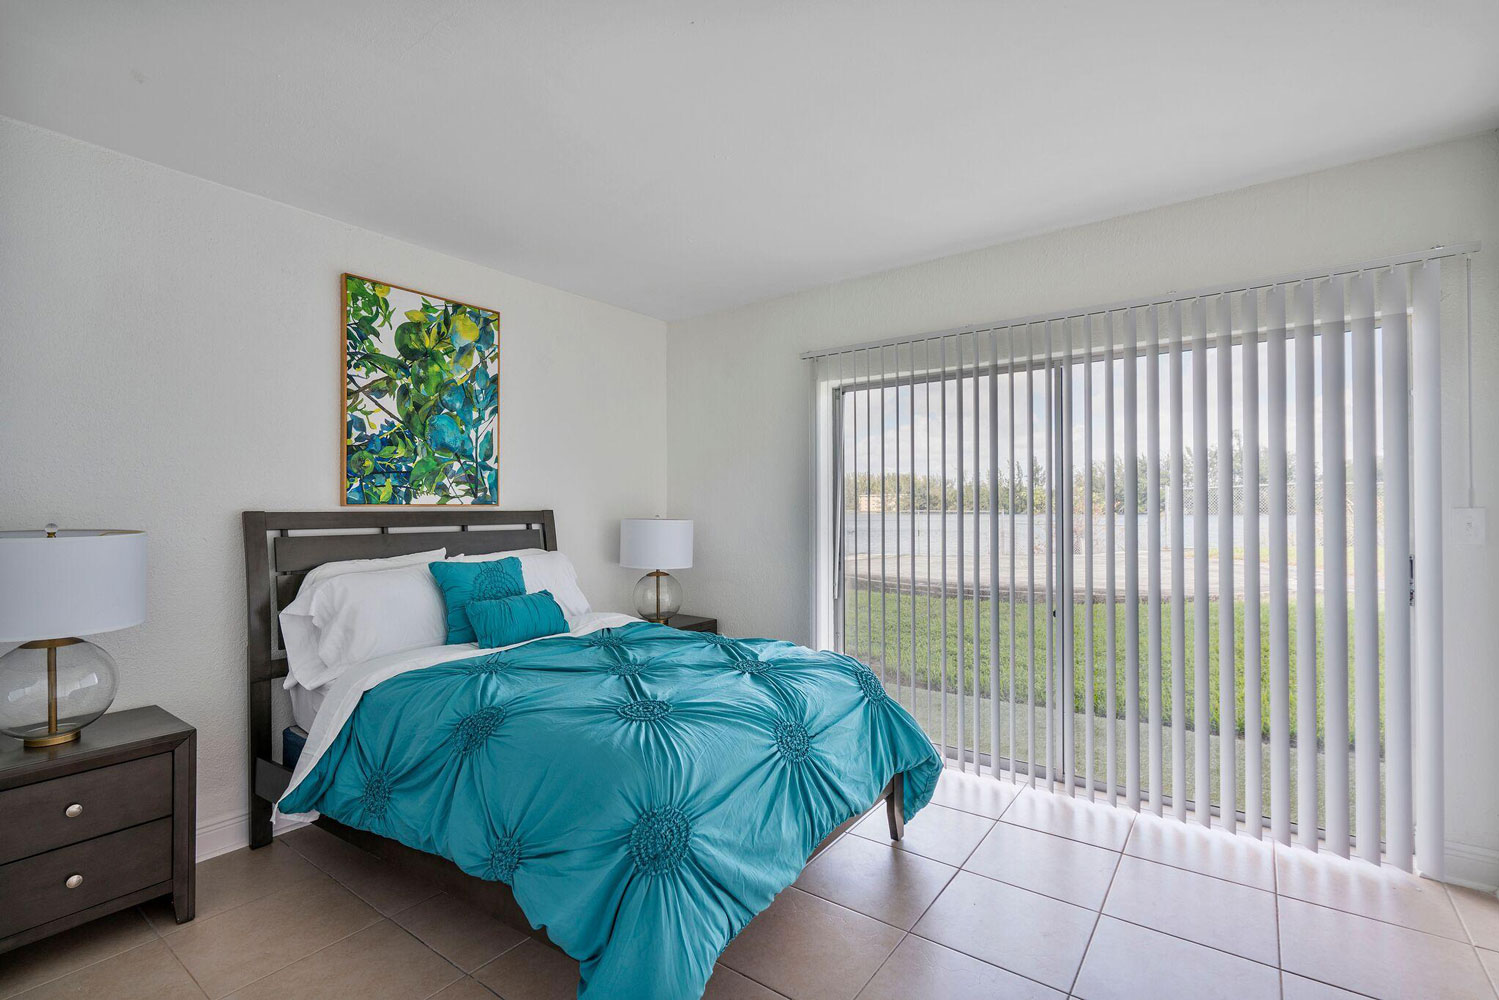 Window Coverings at New Castle Lake Apartments in Miami, FL